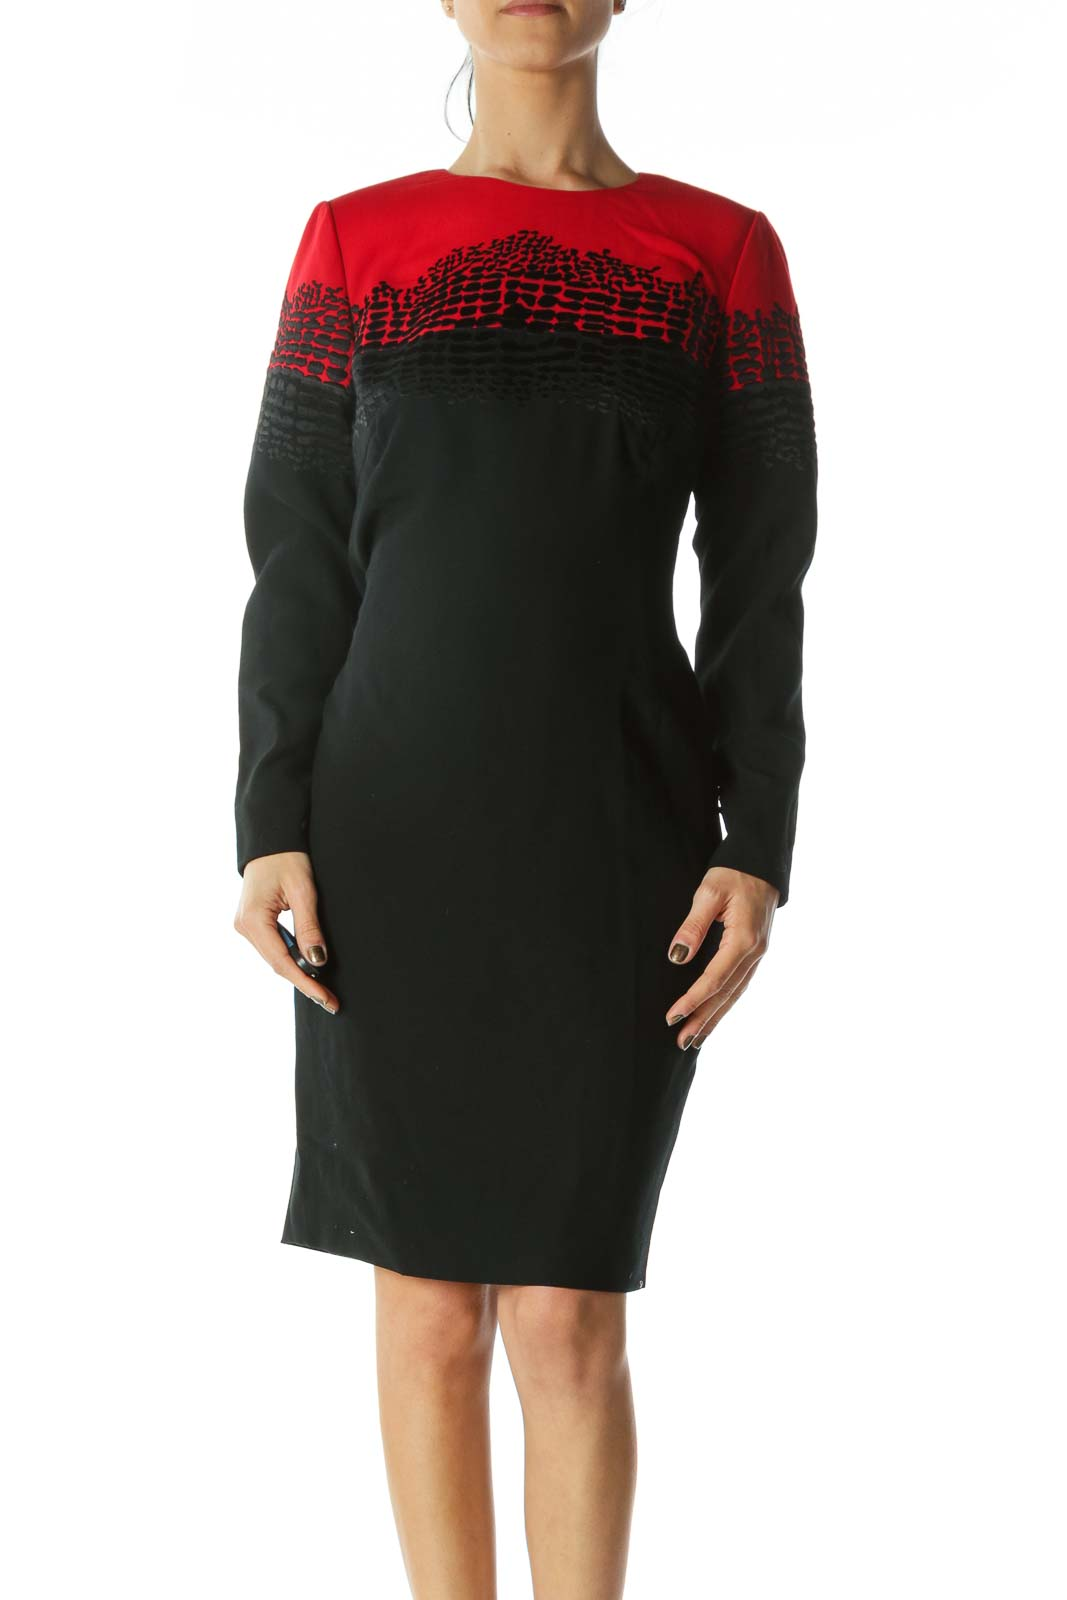 Red Black Long-Sleeve Textured Work Dress Front